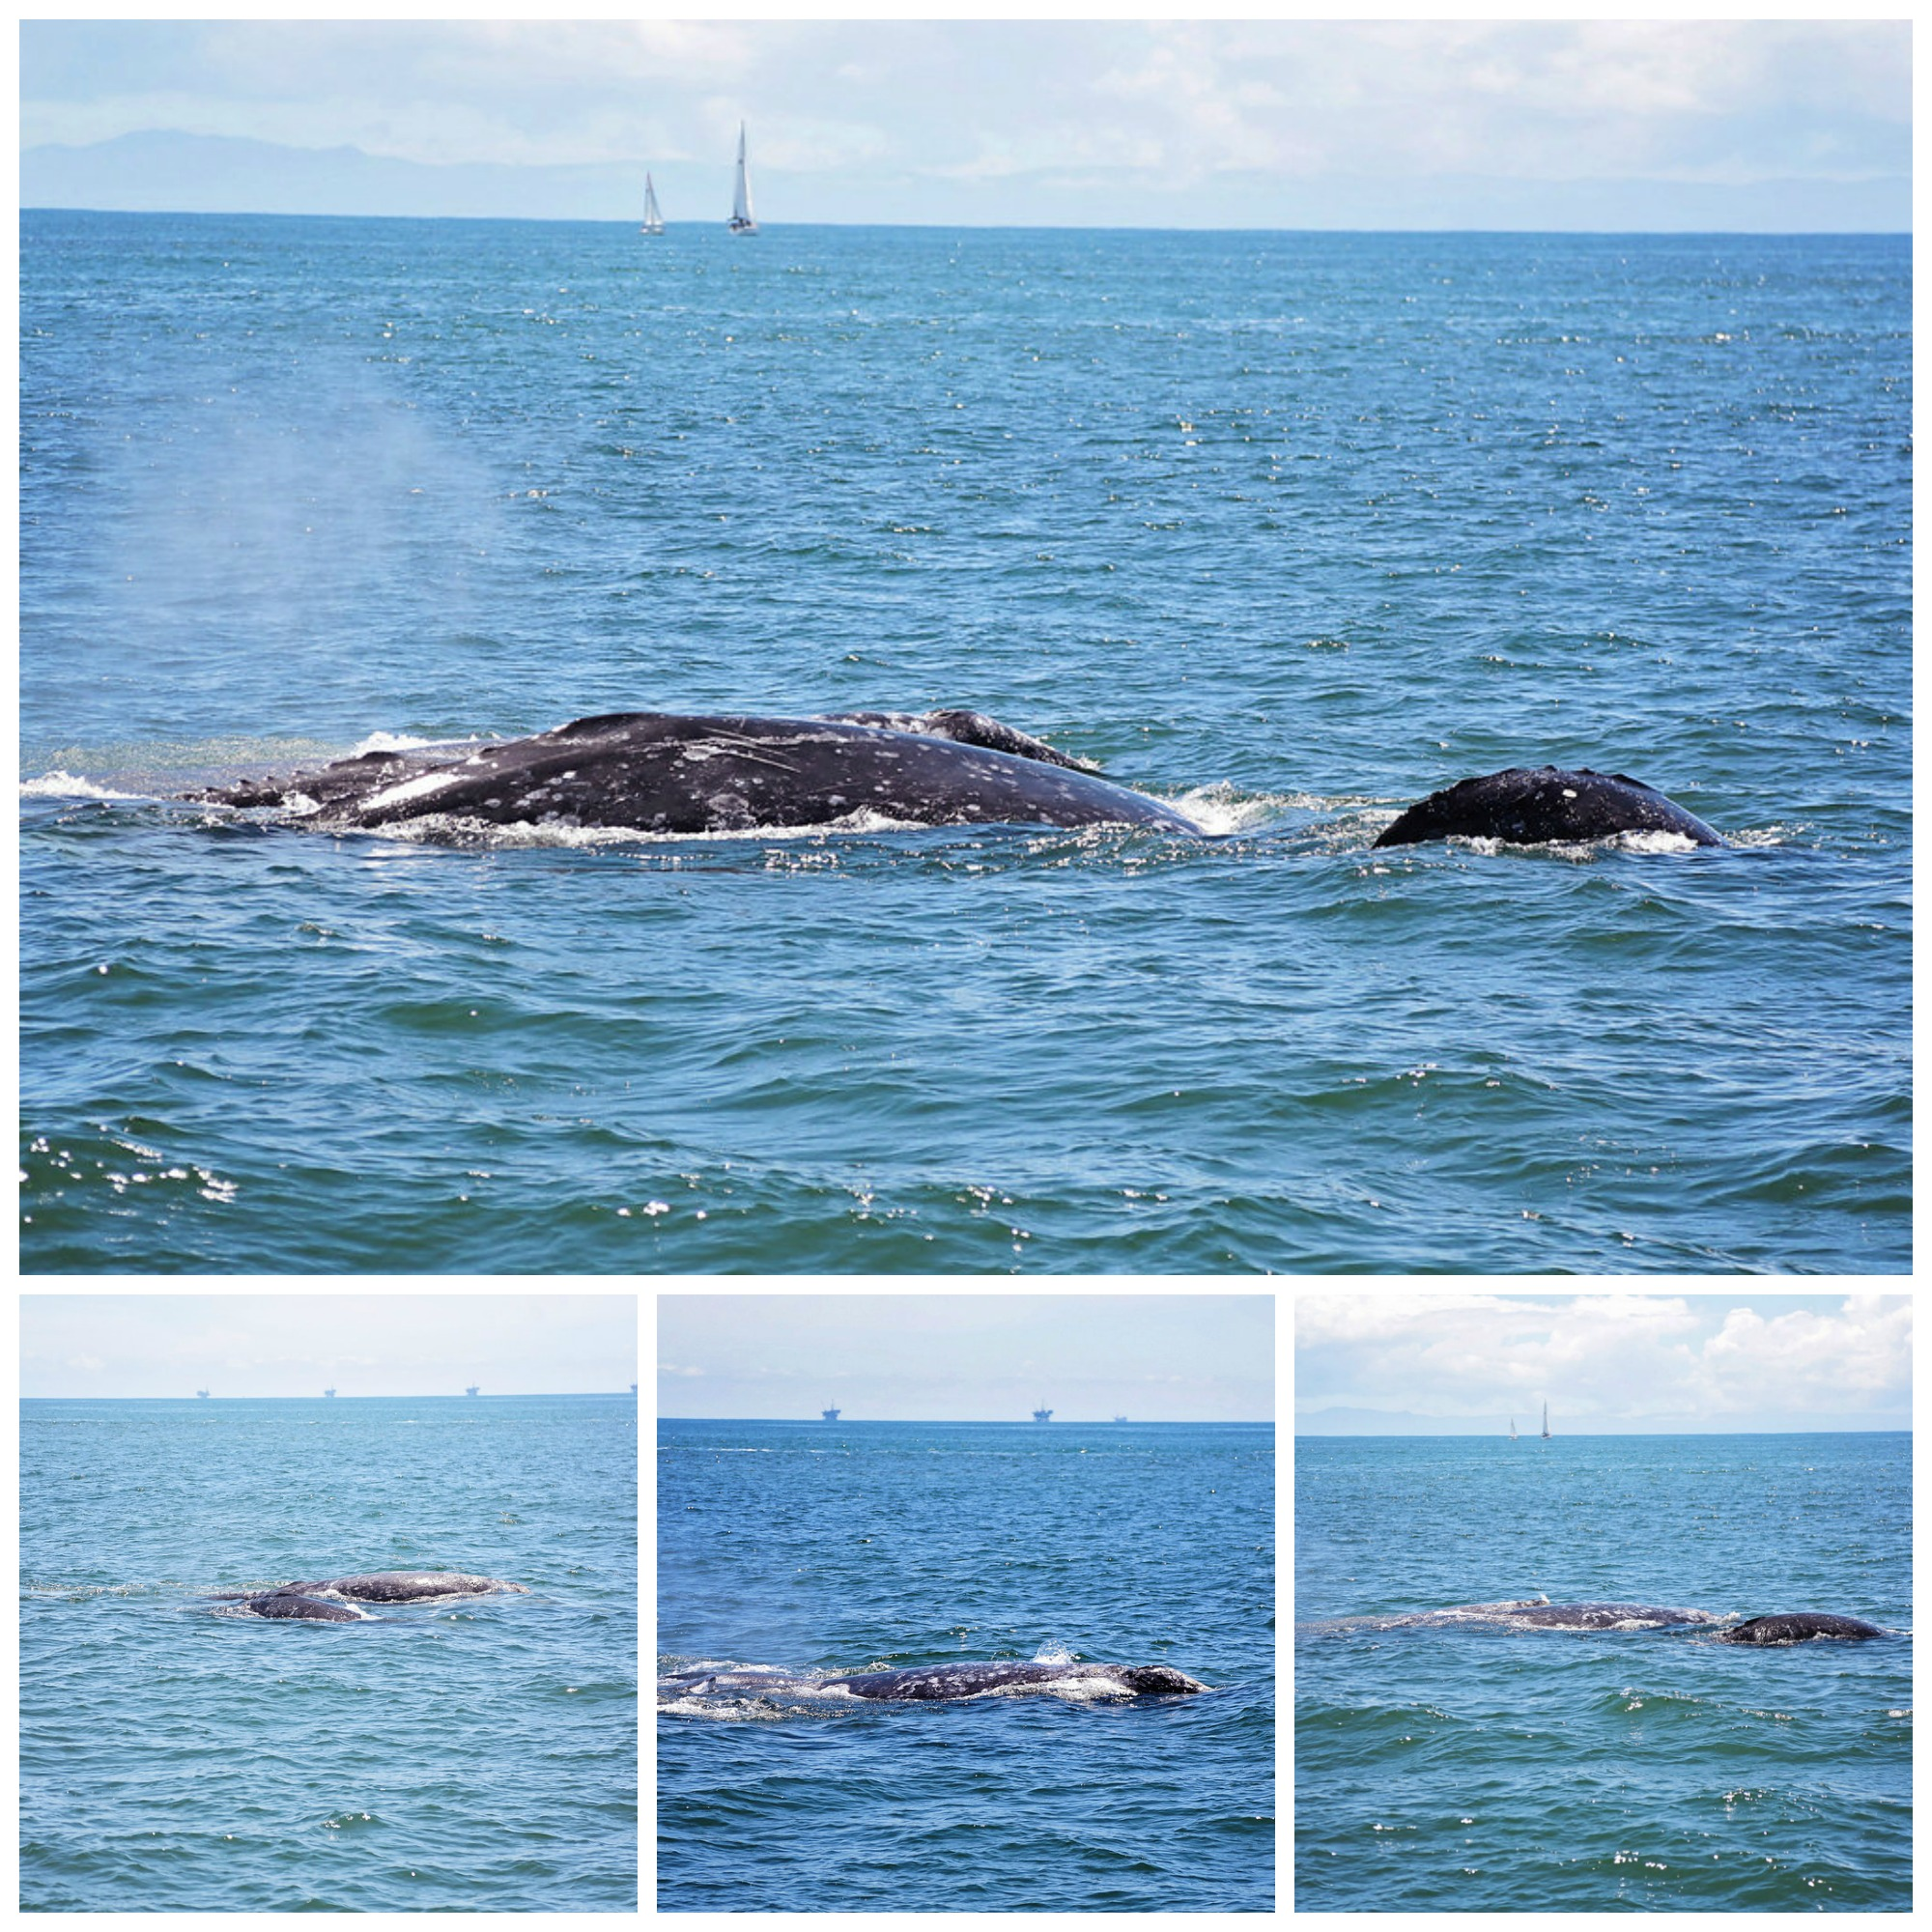 whale watching condor express santa barbara seasick these are your days making memories